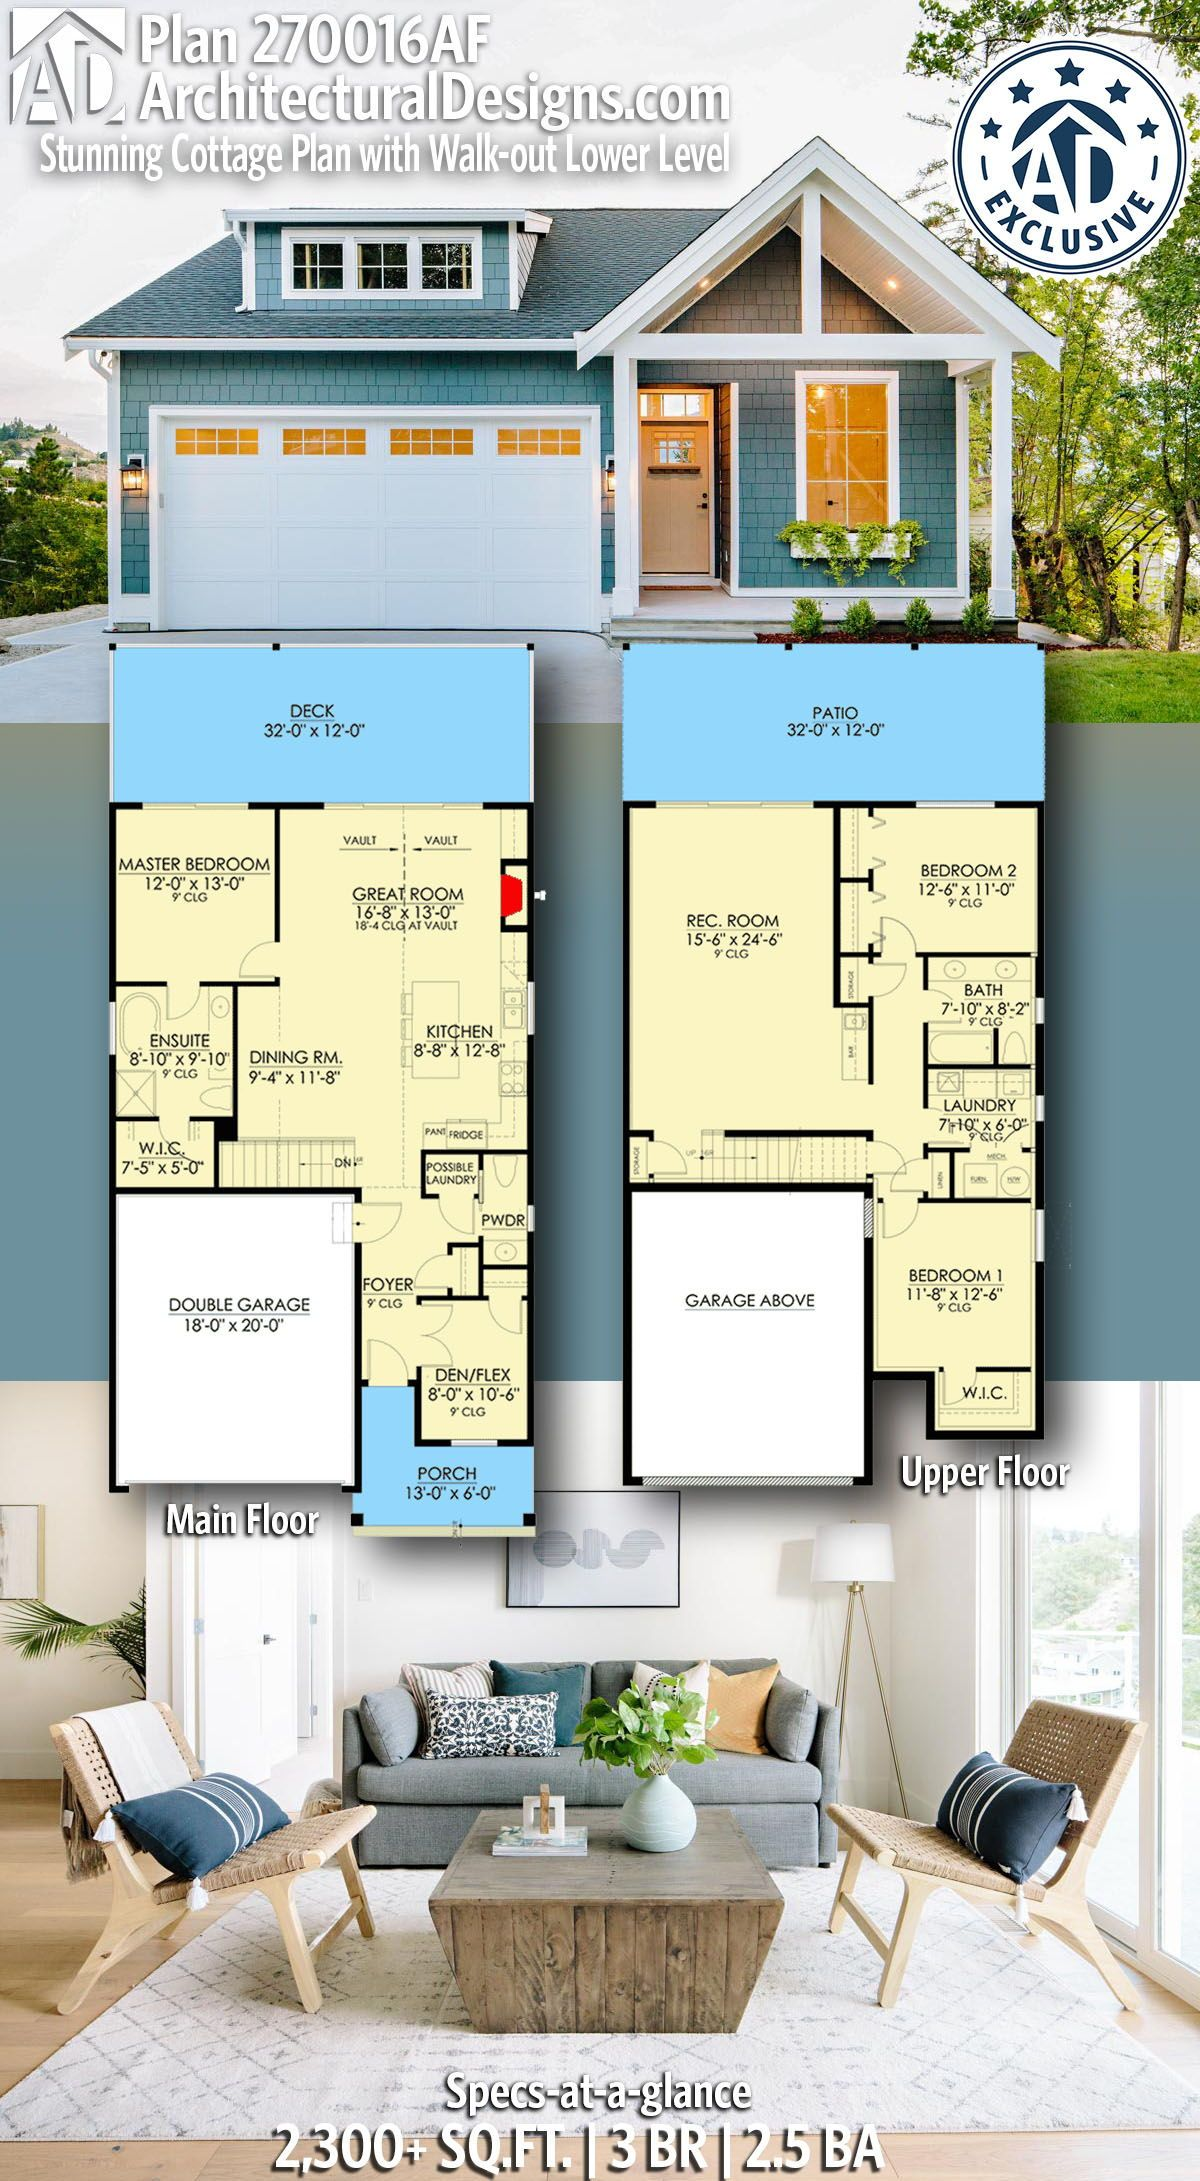 Plan 270016af Stunning Cottage Plan With Walk Out Lower Level Cottage Plan House Blueprints Small House Plans